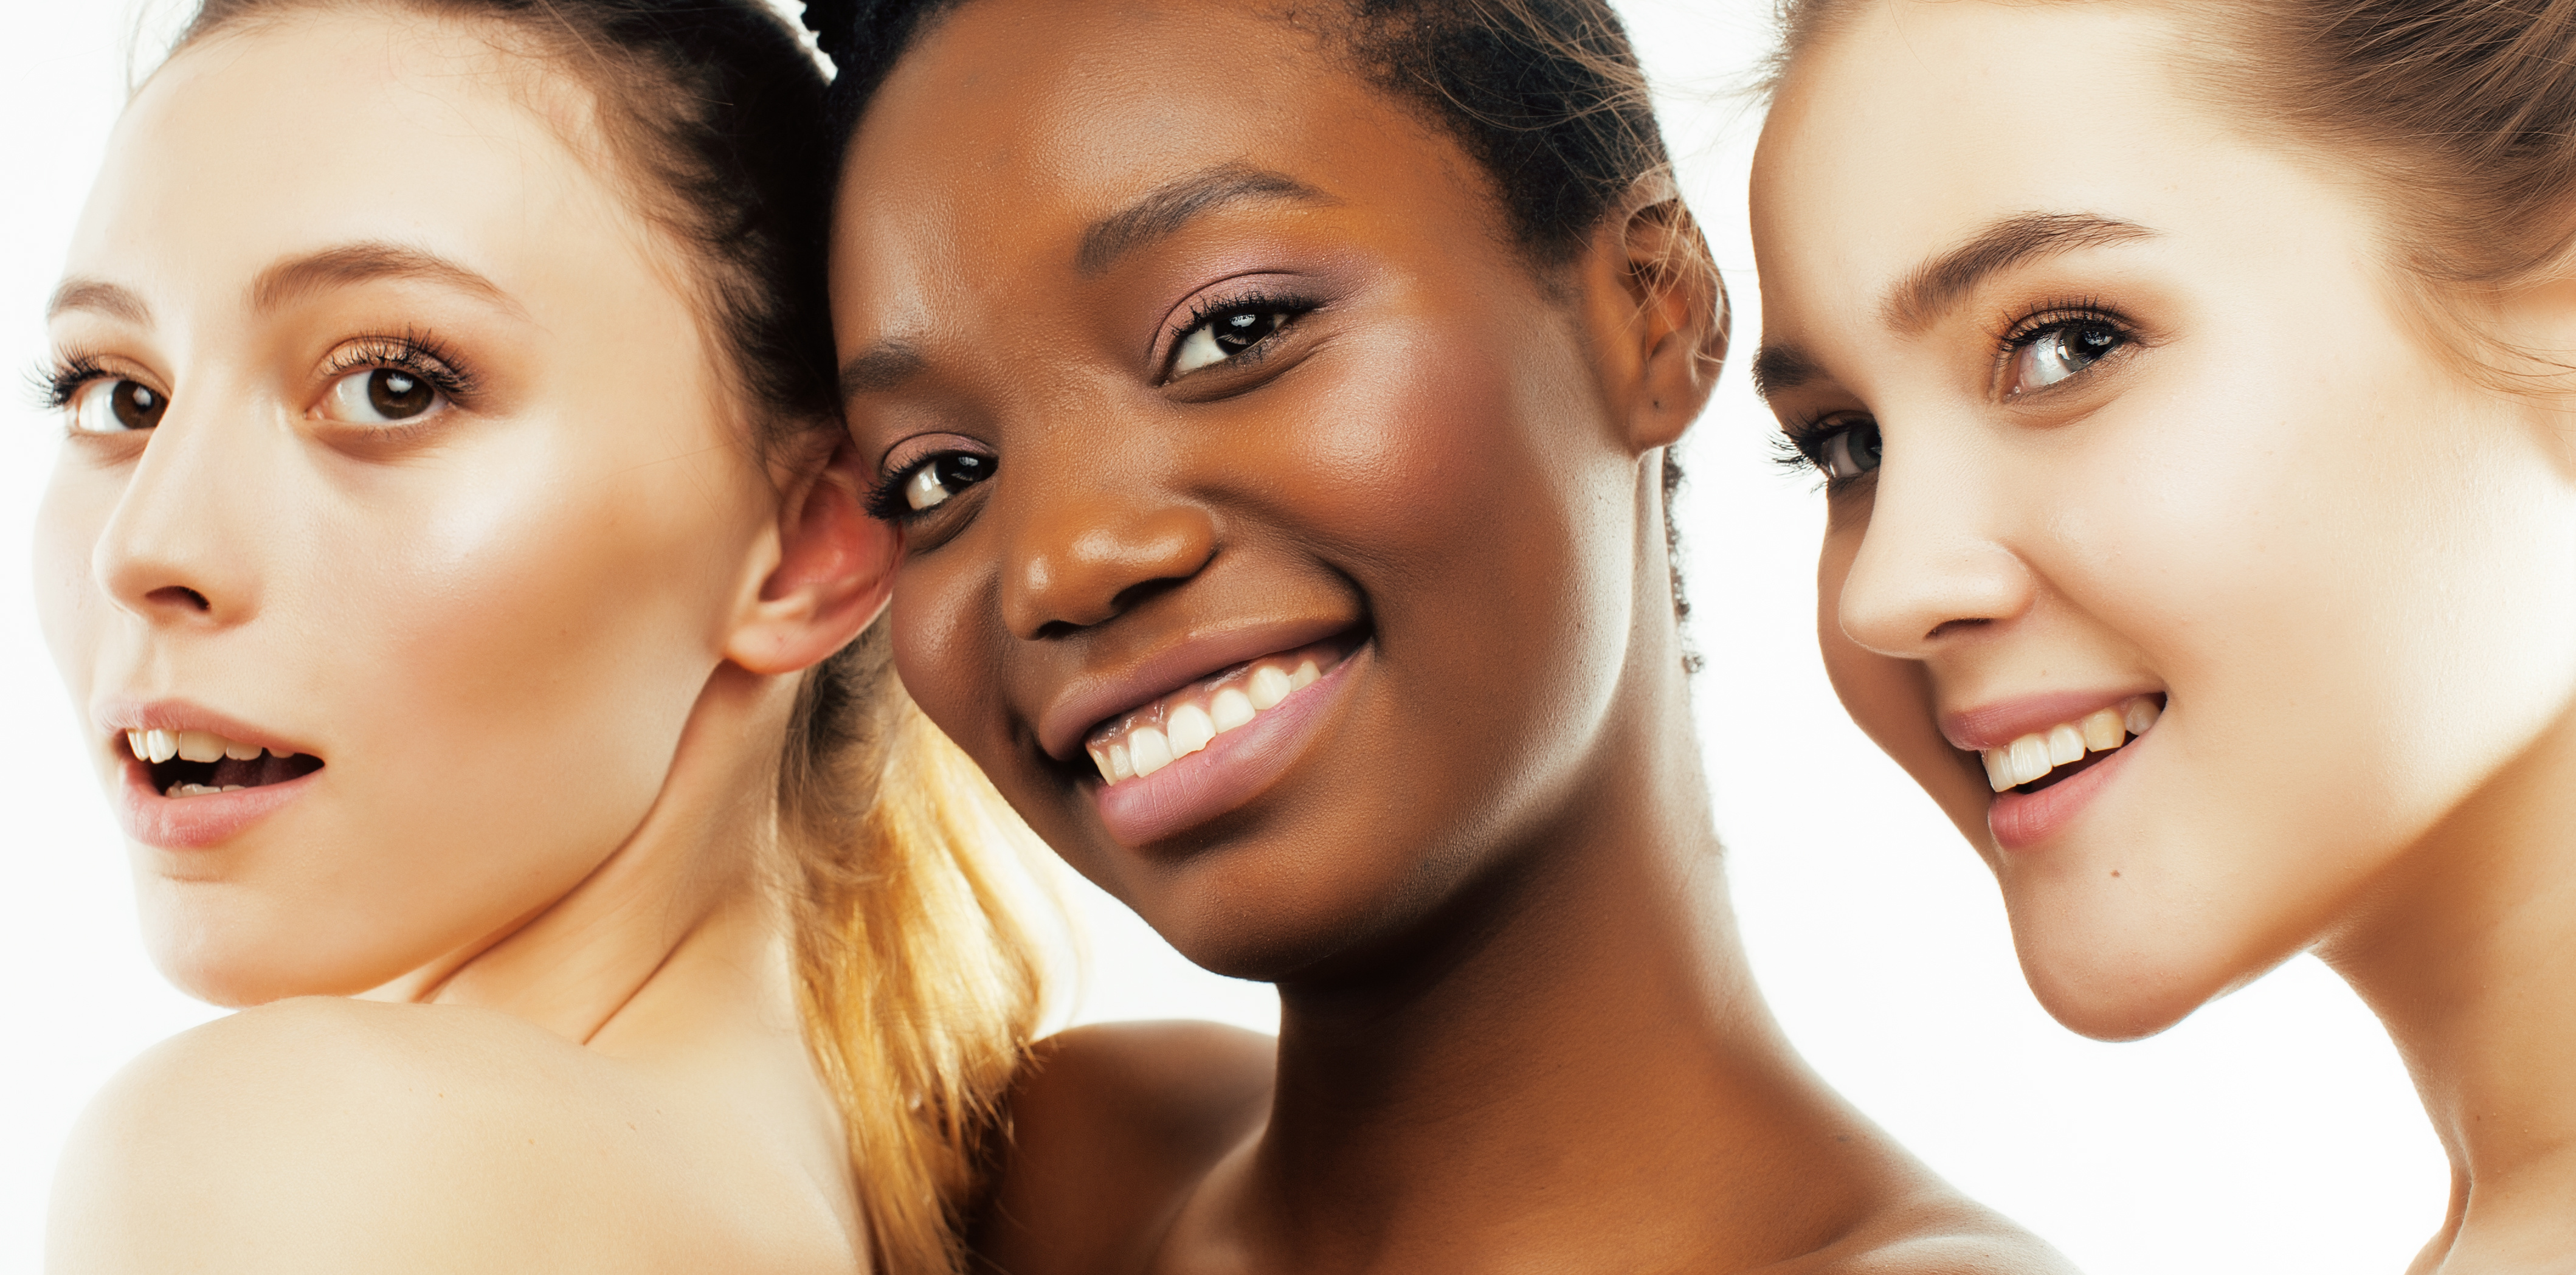 Korean beauty Skip-care texture of cosmetics three different nation woman: african-american, caucasian together isolated on white background happy smiling, diverse type on skin, hair, lifestyle real people concept